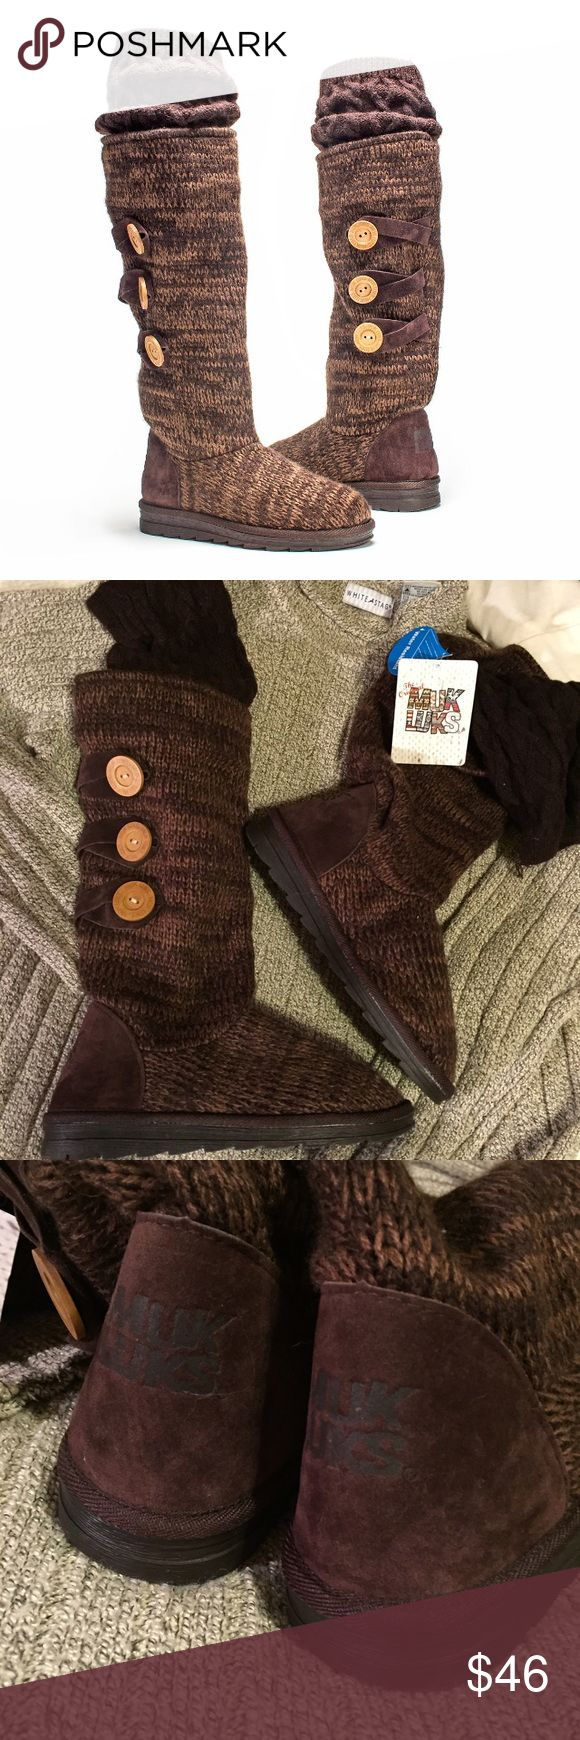 New Muk Luks tall sweater boots New adorable Muk Luk boots, these are not the slippers. Rich colors, soft cozy and comfortable.  Water resistant. From non smoking home. Muk Luks Shoes Winter & Rain Boots